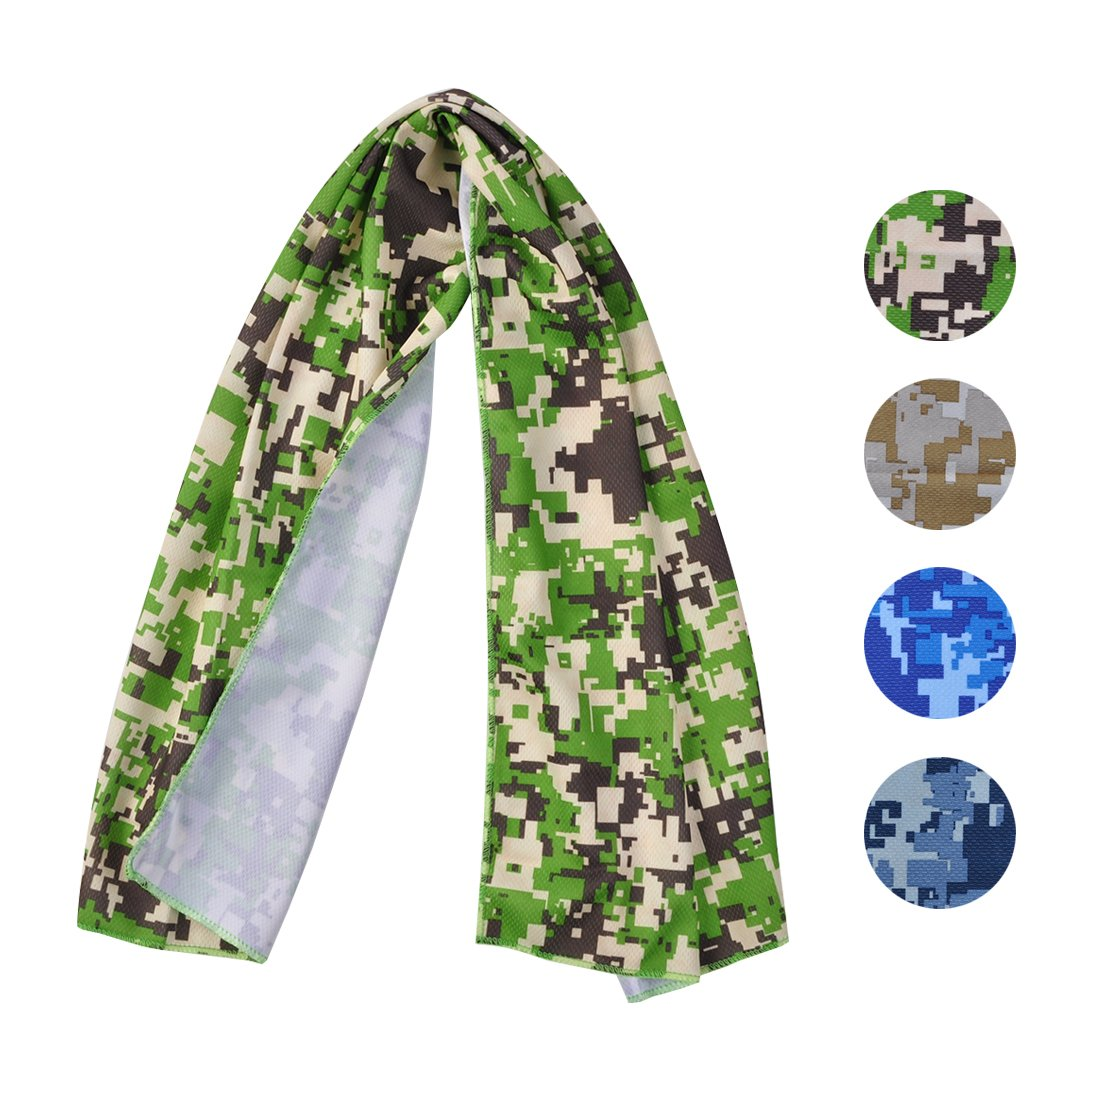 Cooling Towel for Sports, Workout, Fitness, Gym, Yoga, Pilates, Travel, Camping & More, Ice Cold, Camouflage, Multi Colors (CAM-Green)